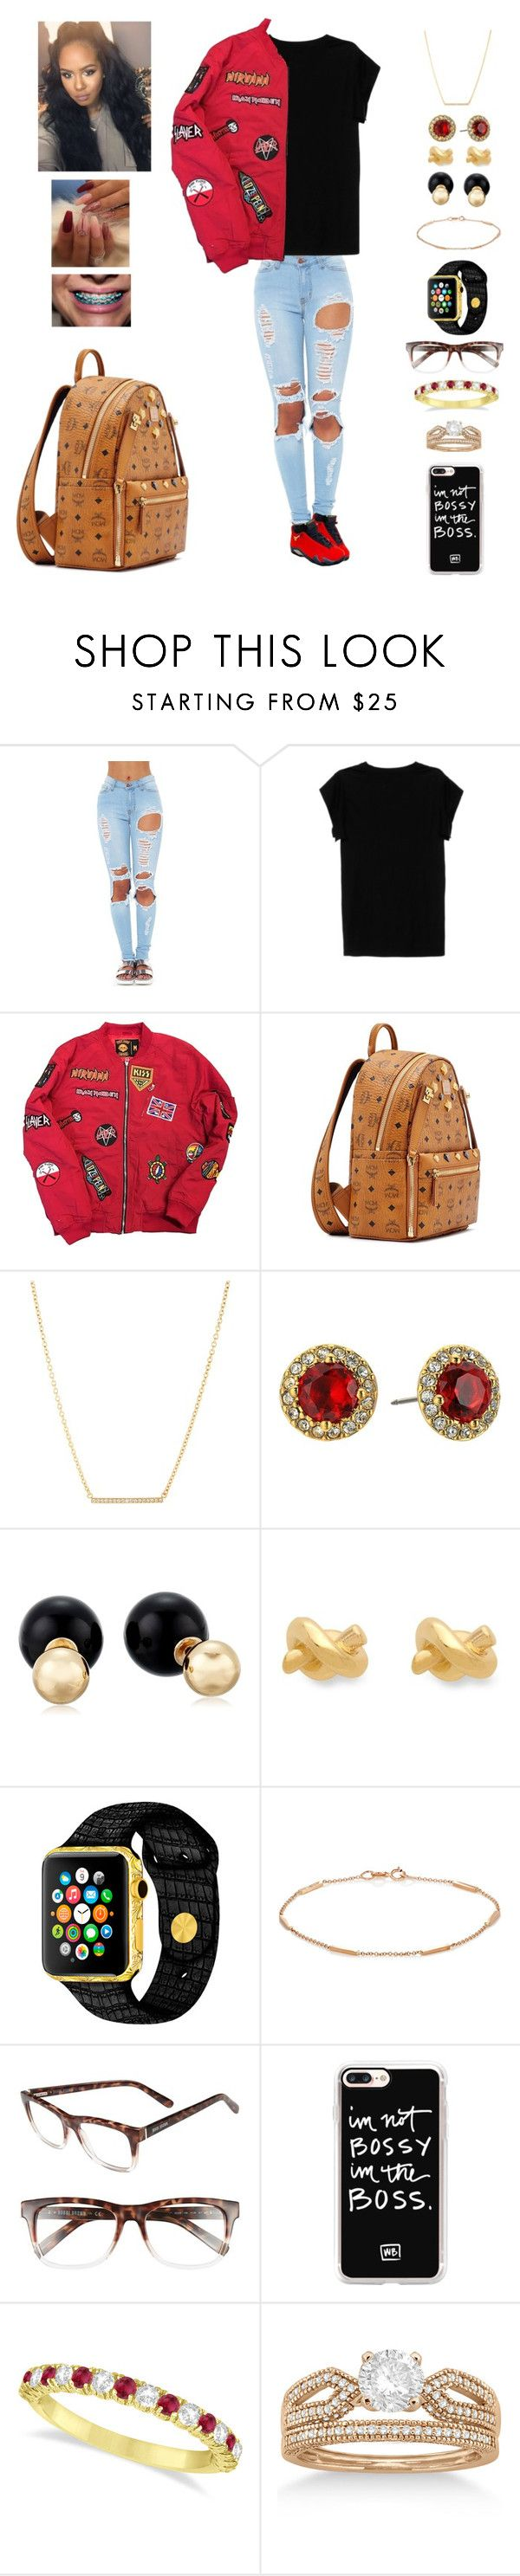 """""""IF IT AINT ABOUT THE MONEY,STOP WAISTING MY TIME💯😘💵💰"""" by lailajohnson ❤ liked on Polyvore featuring Isabel Marant, MCM, Kate Spade, Lauren Ralph Lauren, Betsey Johnson, Jennifer Meyer Jewelry, Bobbi Brown Cosmetics, Casetify and Allurez"""